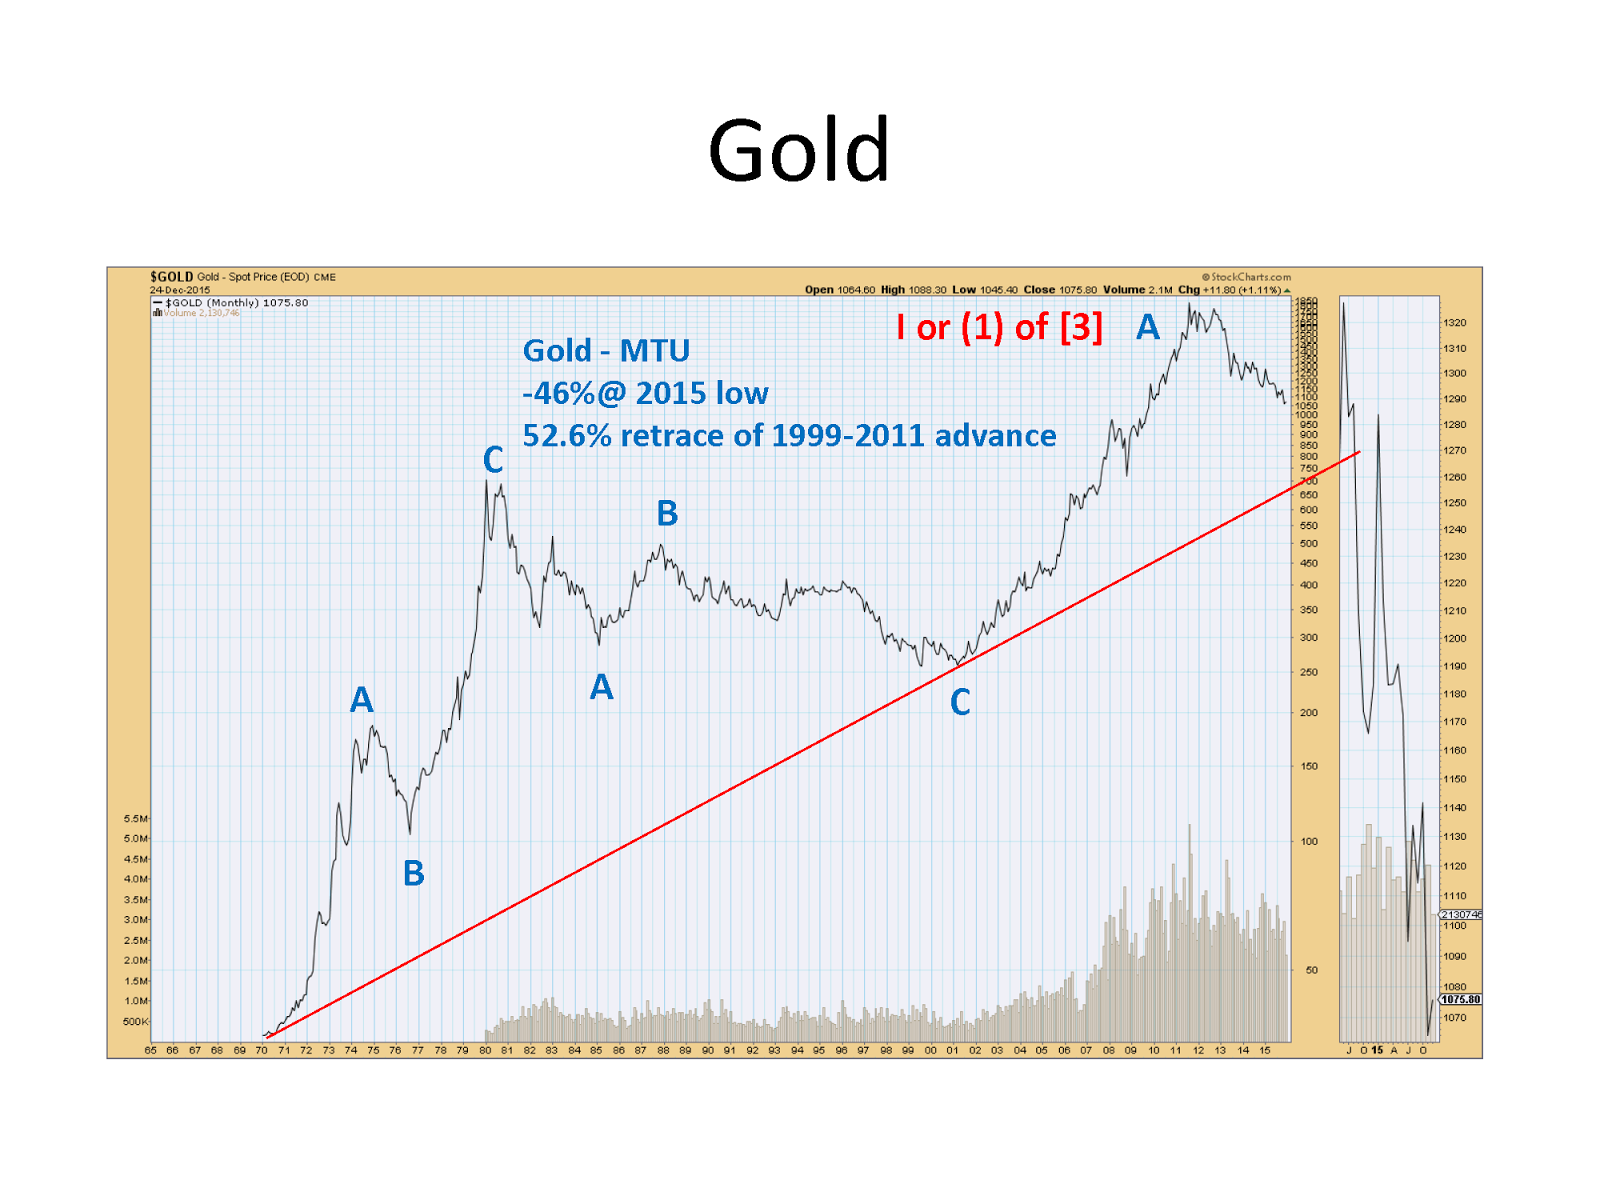 Gold as priced in USD